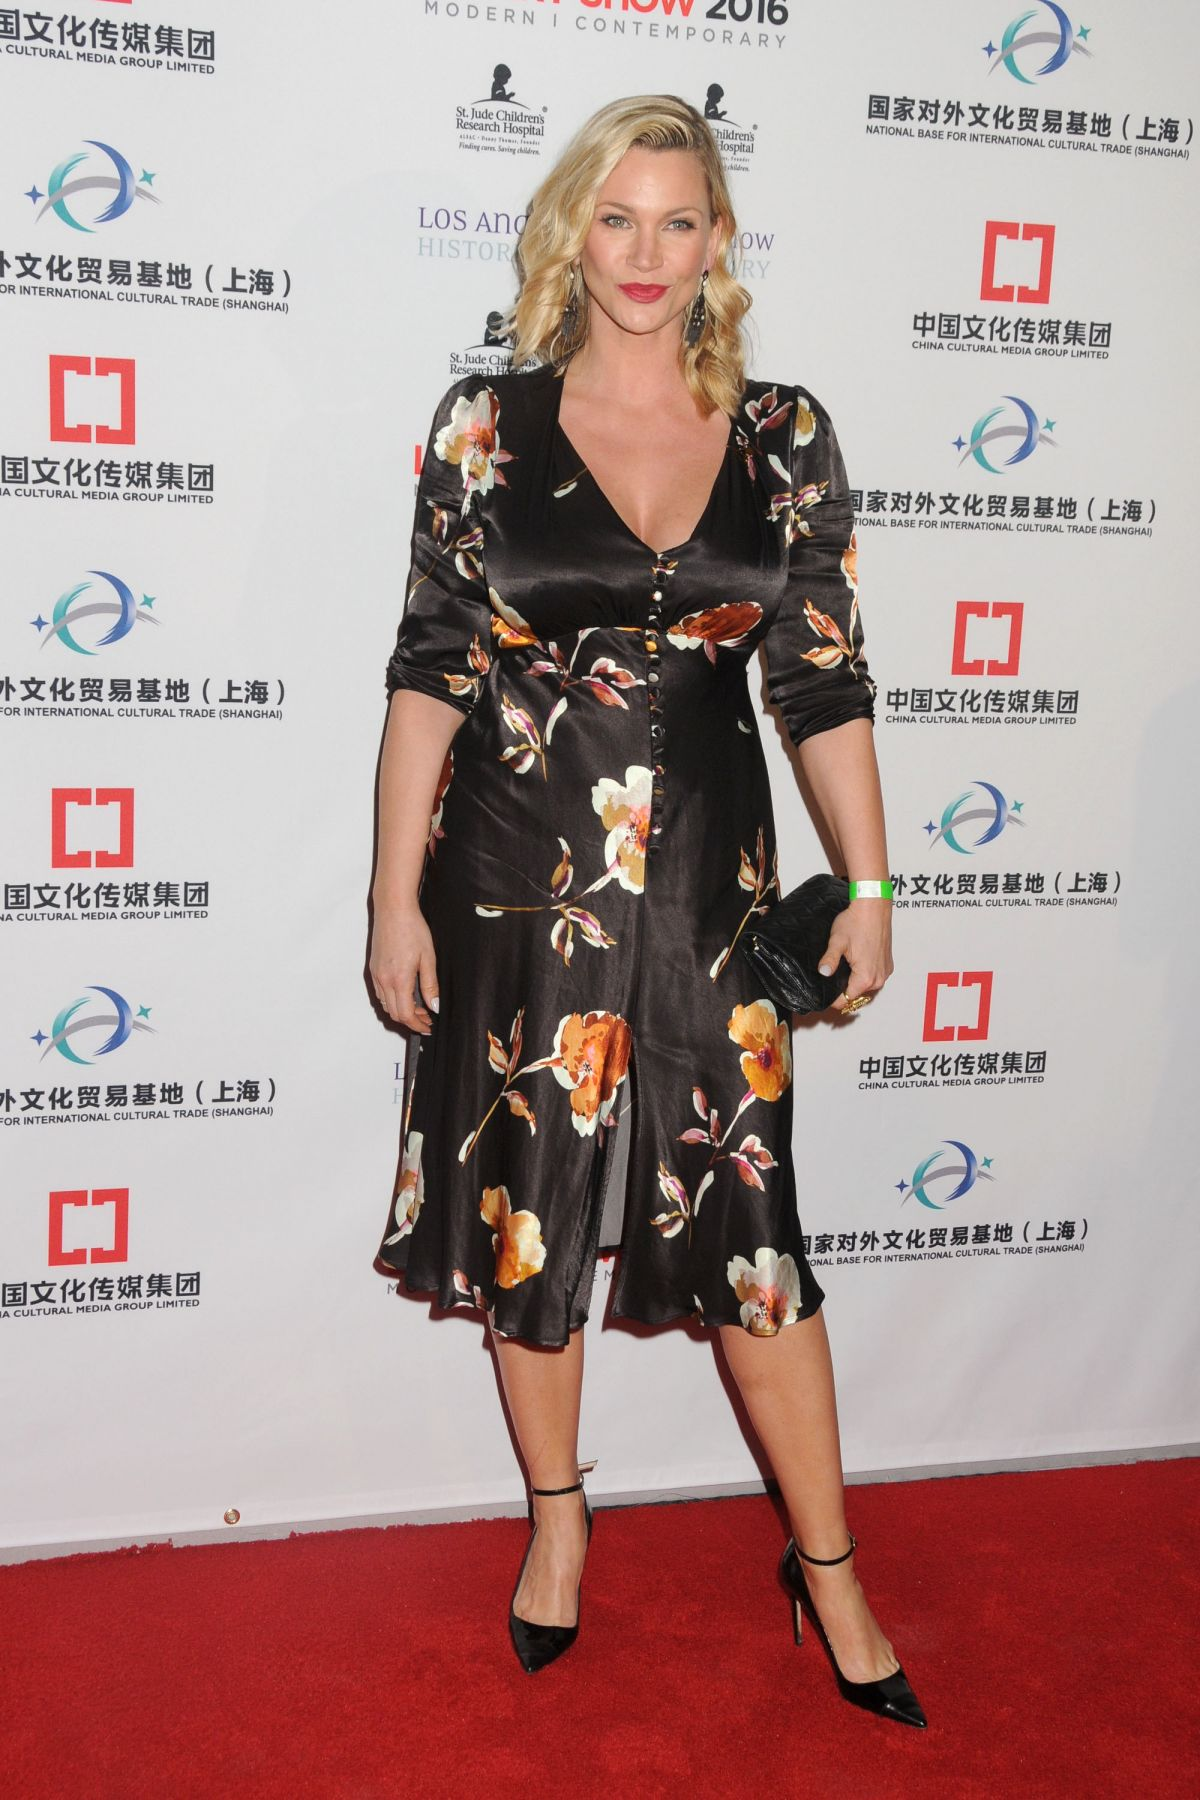 Natasha Henstridge NATASHA HENSTRIDGE at LA Art Show and Los Angeles Fine Art Show's 2016  Opening Night Premiere